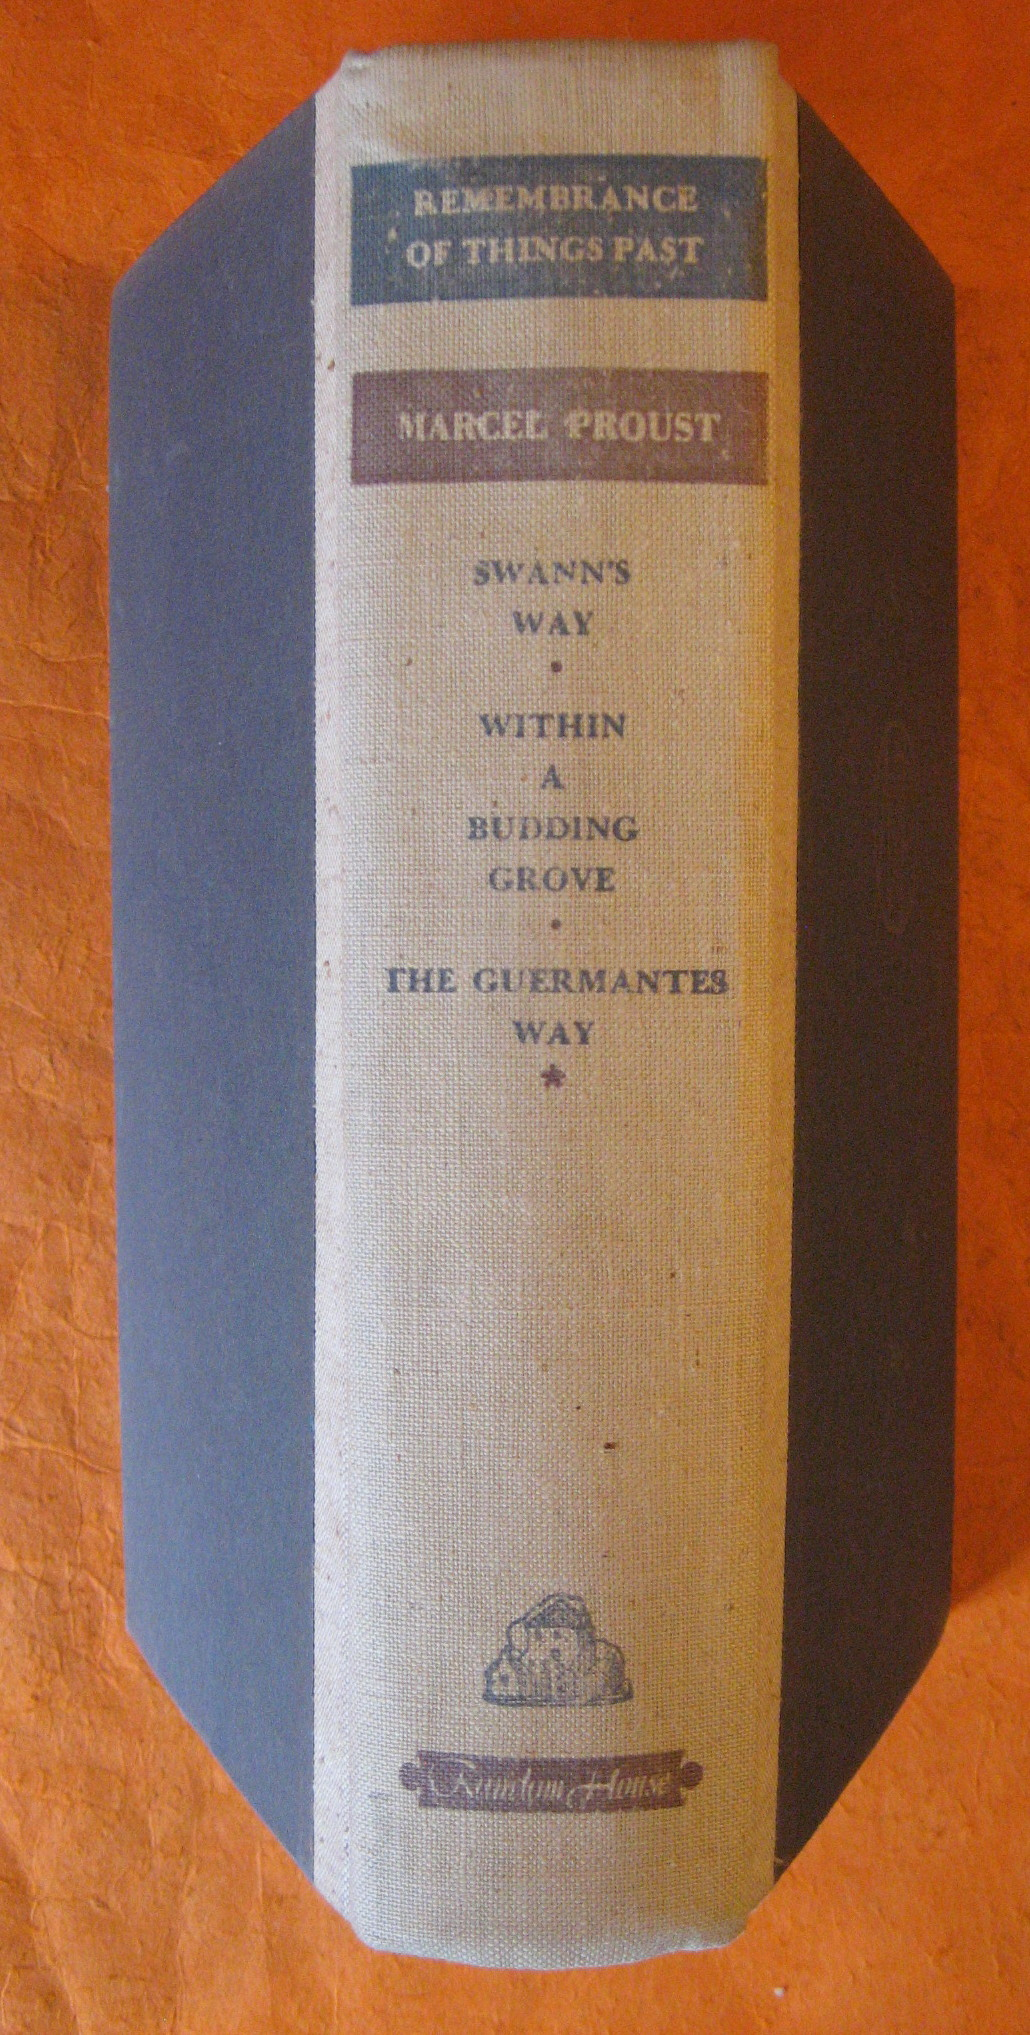 Image for Remembrance of Things Past:  Swann's Way, Within a Budding Grove, The Guermantes Way [ Volume One]